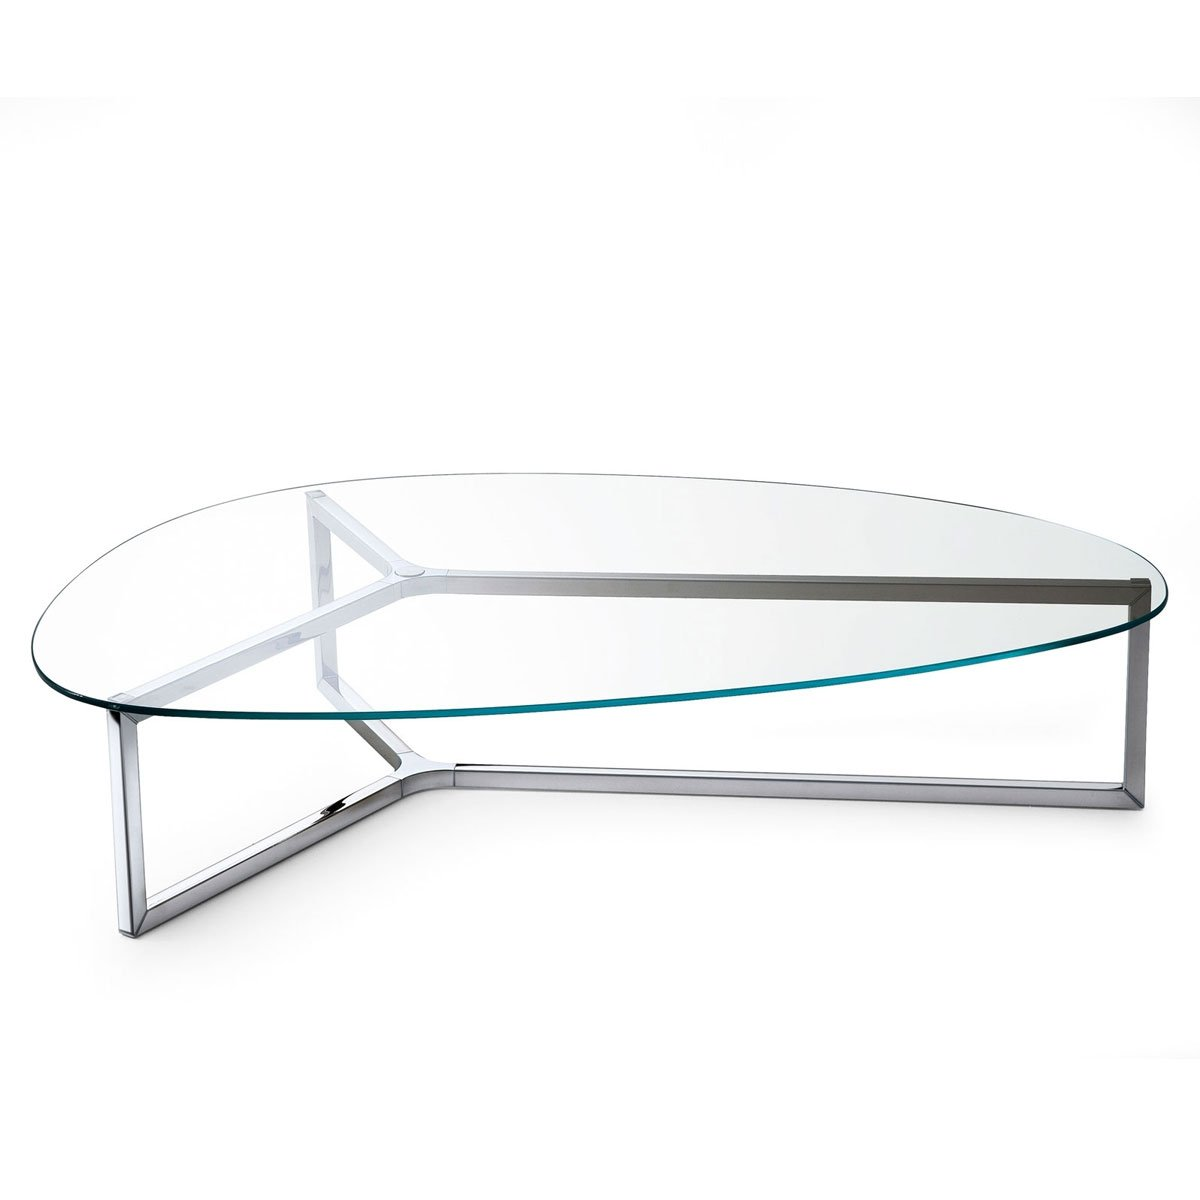 Raj 3 glass and metal coffee table by gallotti radice klarity glass furniture Steel and glass coffee table